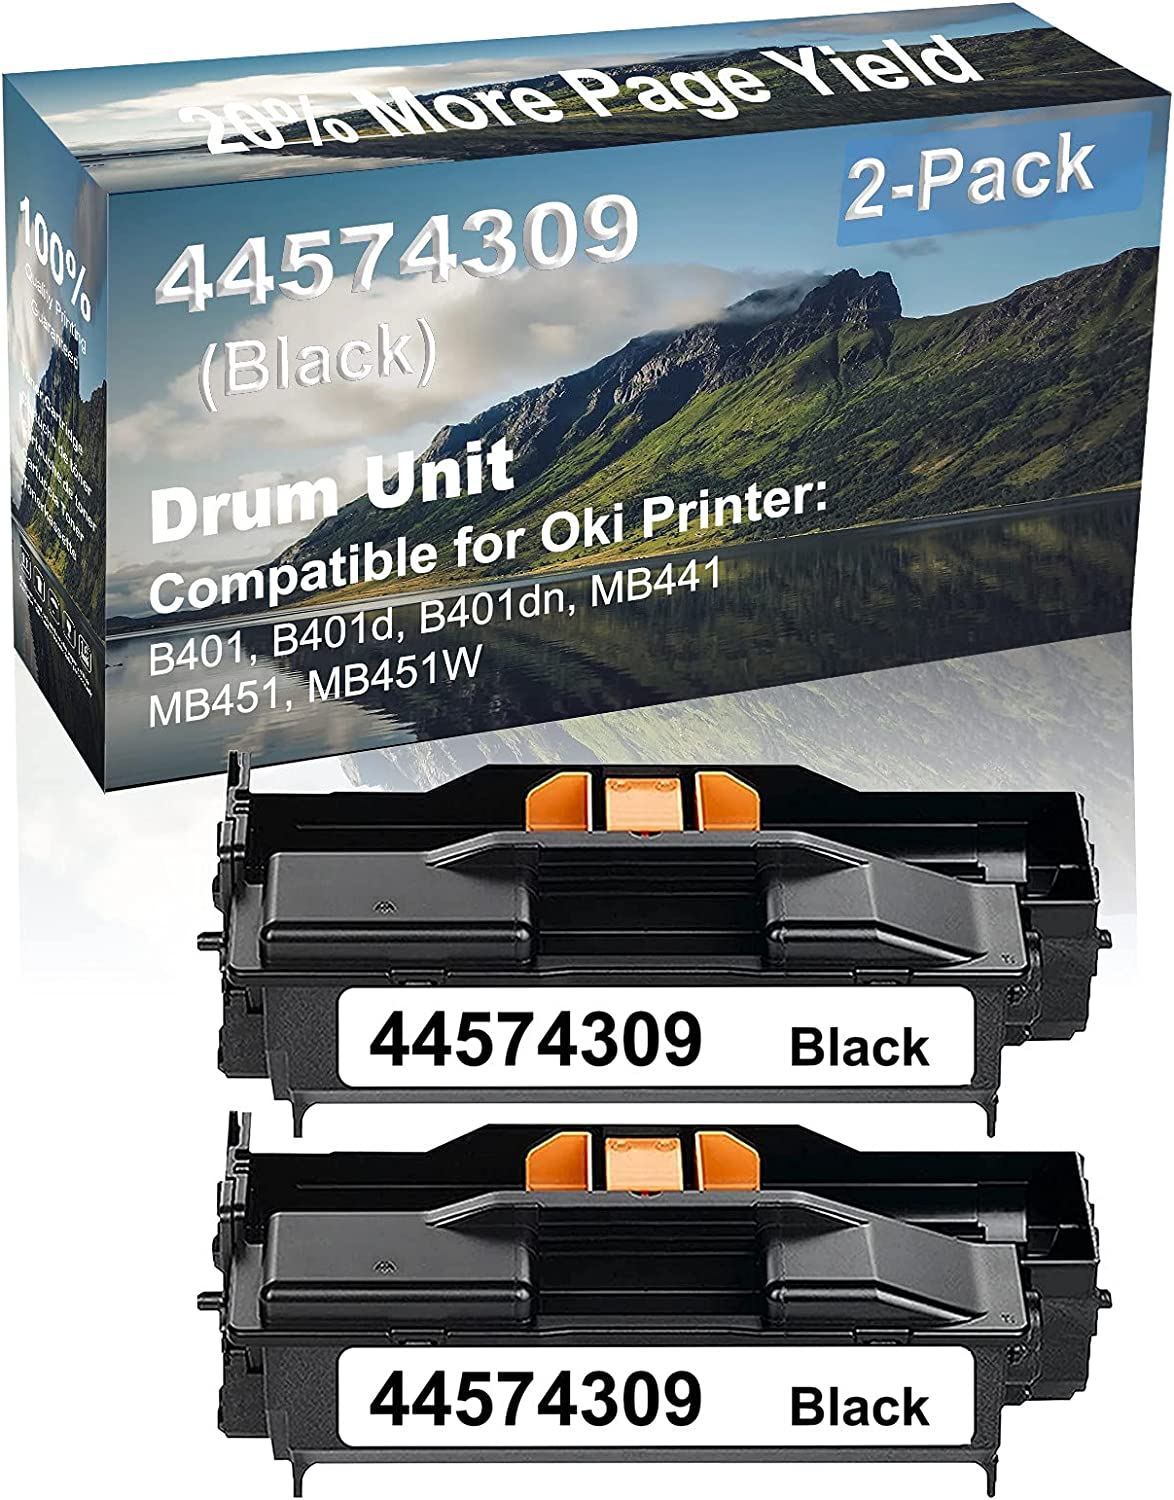 2-Pack Compatible Drum Unit (Black) Replacement for Oki 44574309 Drum Kit use for Oki MB451, MB451W Printer